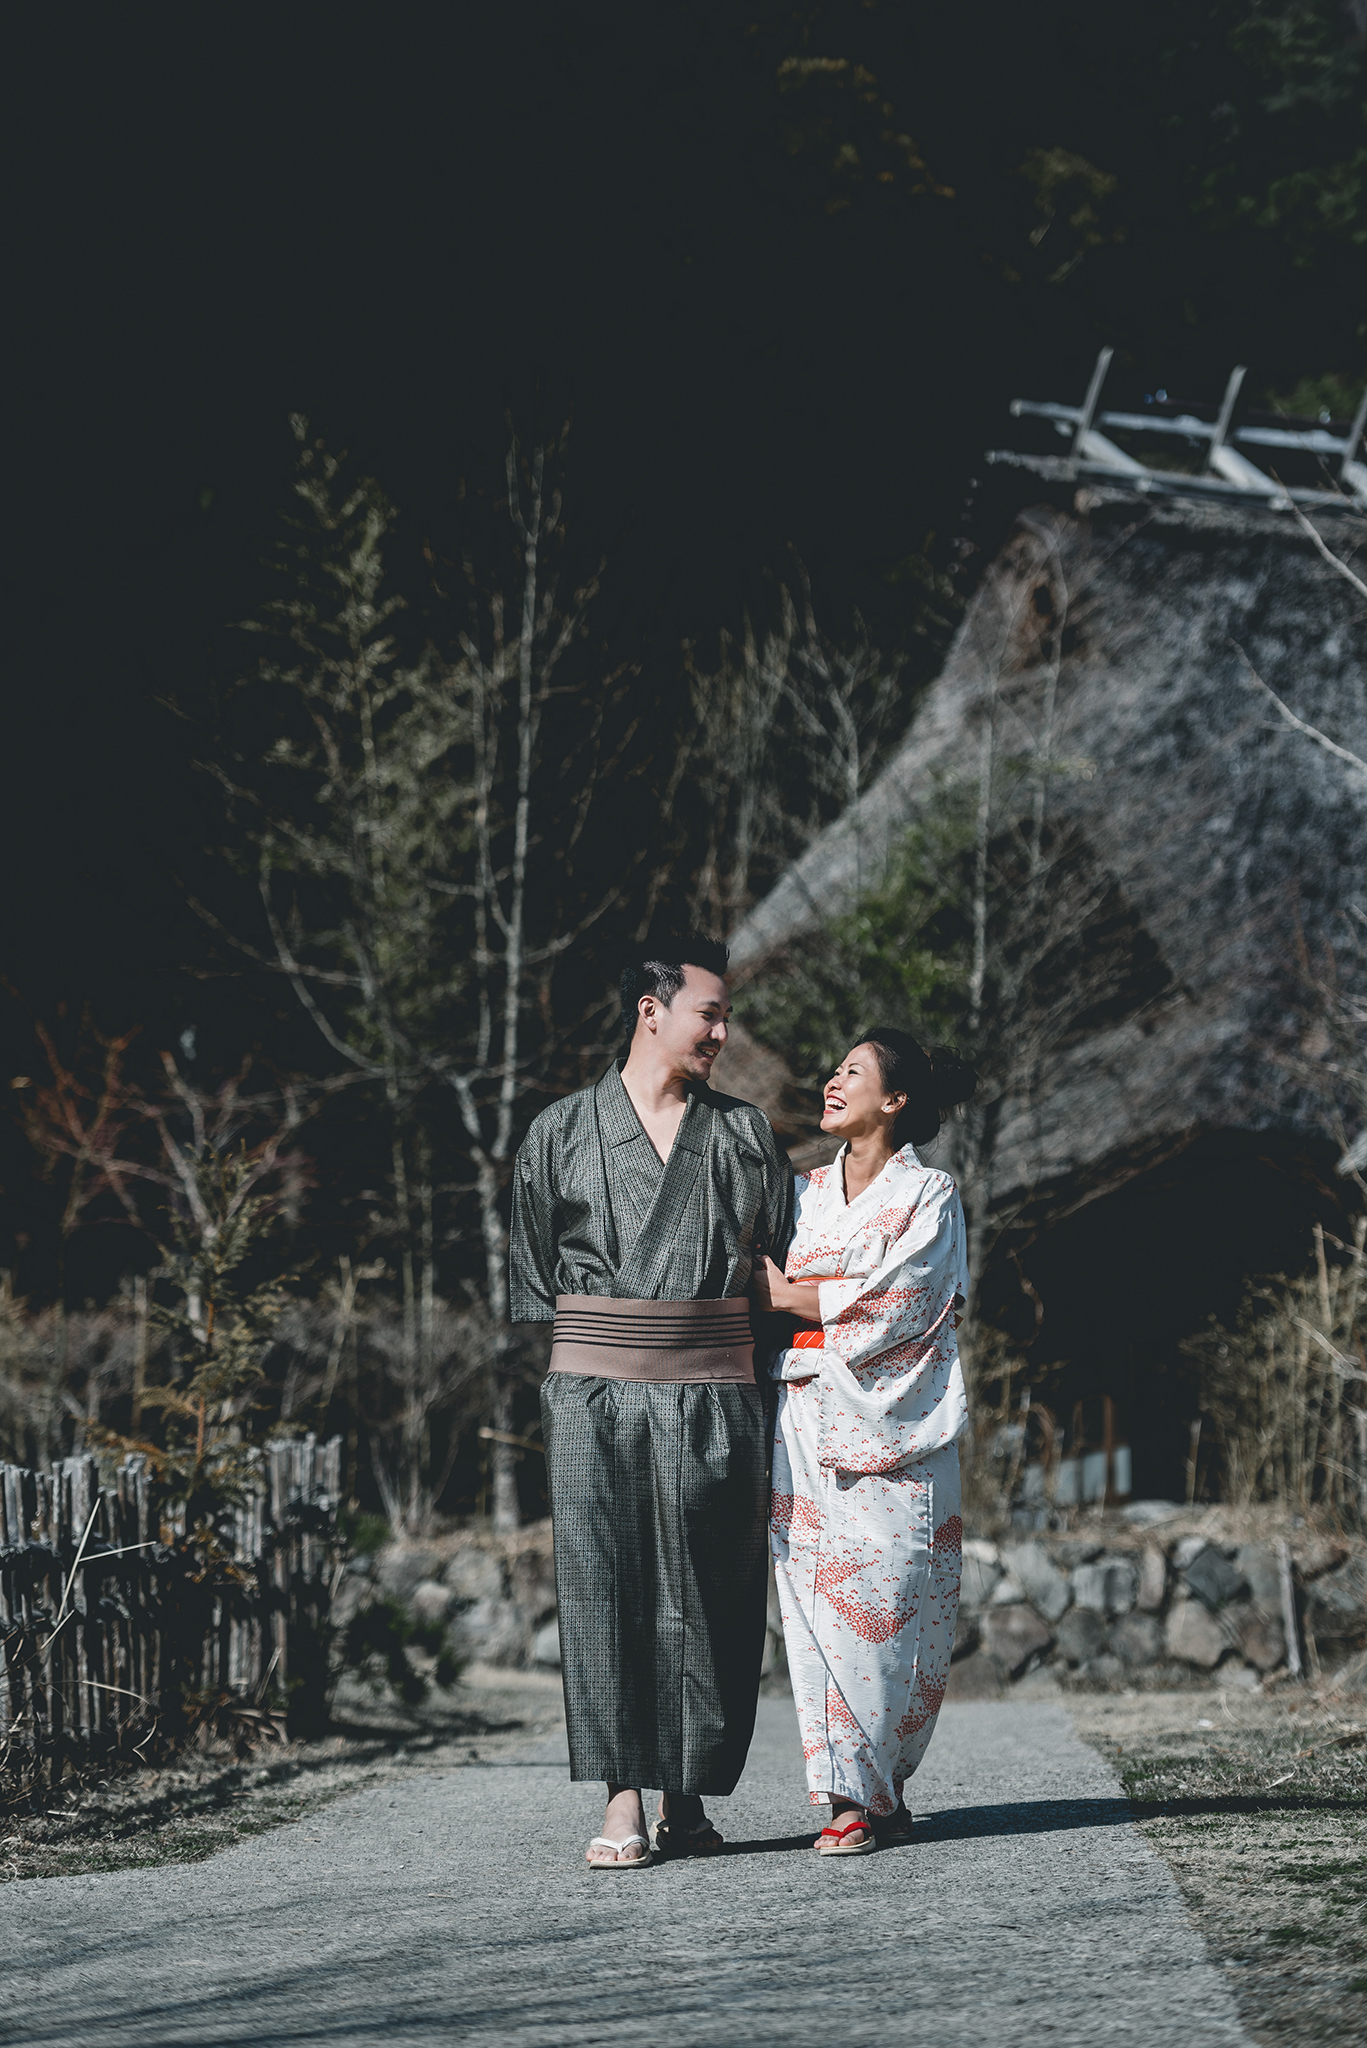 Japan Prewedding 34.JPG